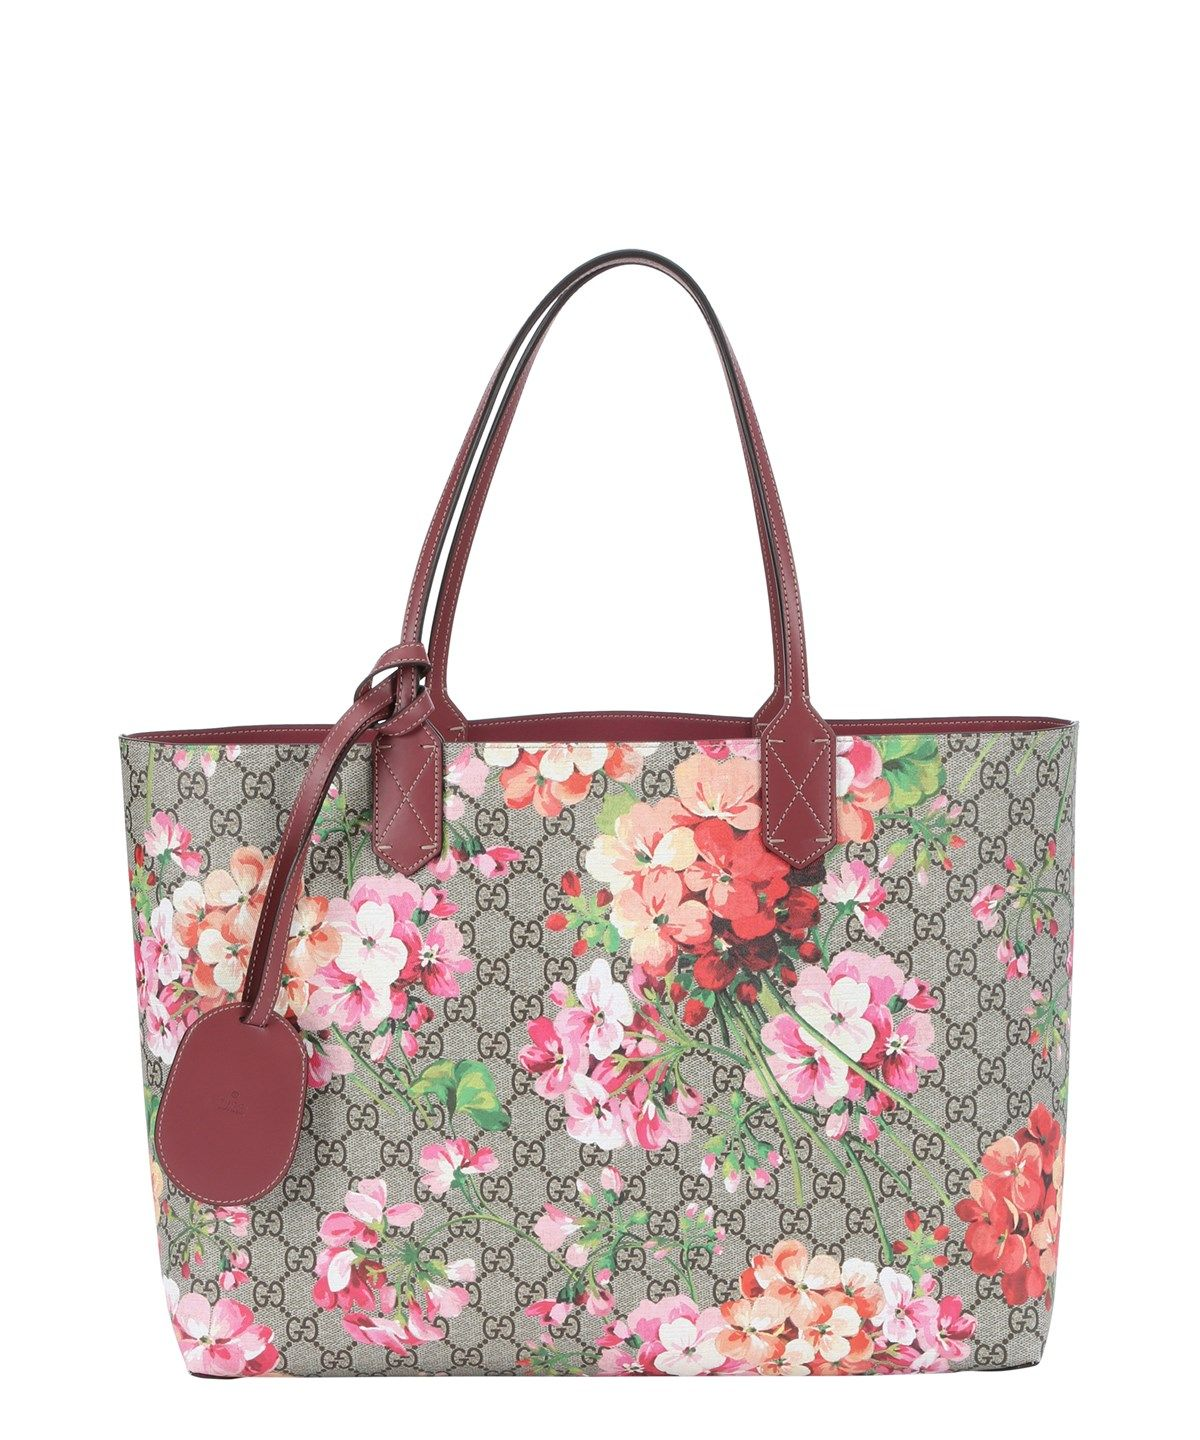 81a53689b7e GUCCI Pink And Beige Gg Blooms Print Leather Reversible Medium Tote Bag .   gucci  bags  leather  hand bags  tote